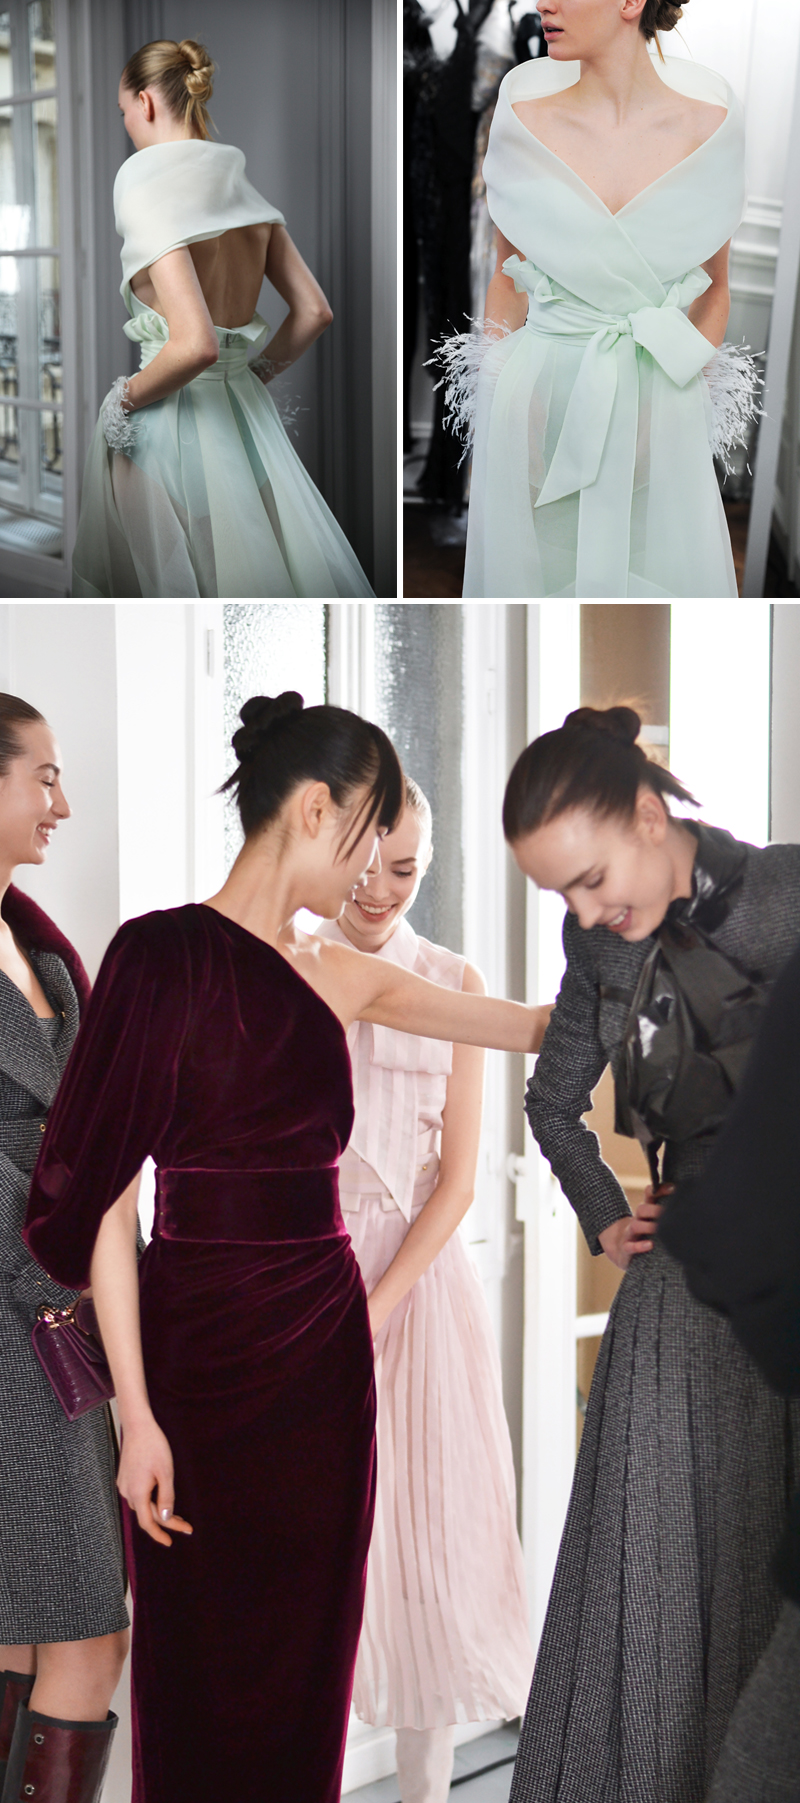 RalphandRusso, Ralph&Russo, Ralph&Russo RTW Fall Winter 2018, R&R Pret a Porter, Perfect Wedding Magazine, Perfect Wedding Blog, Paris Fashion Week